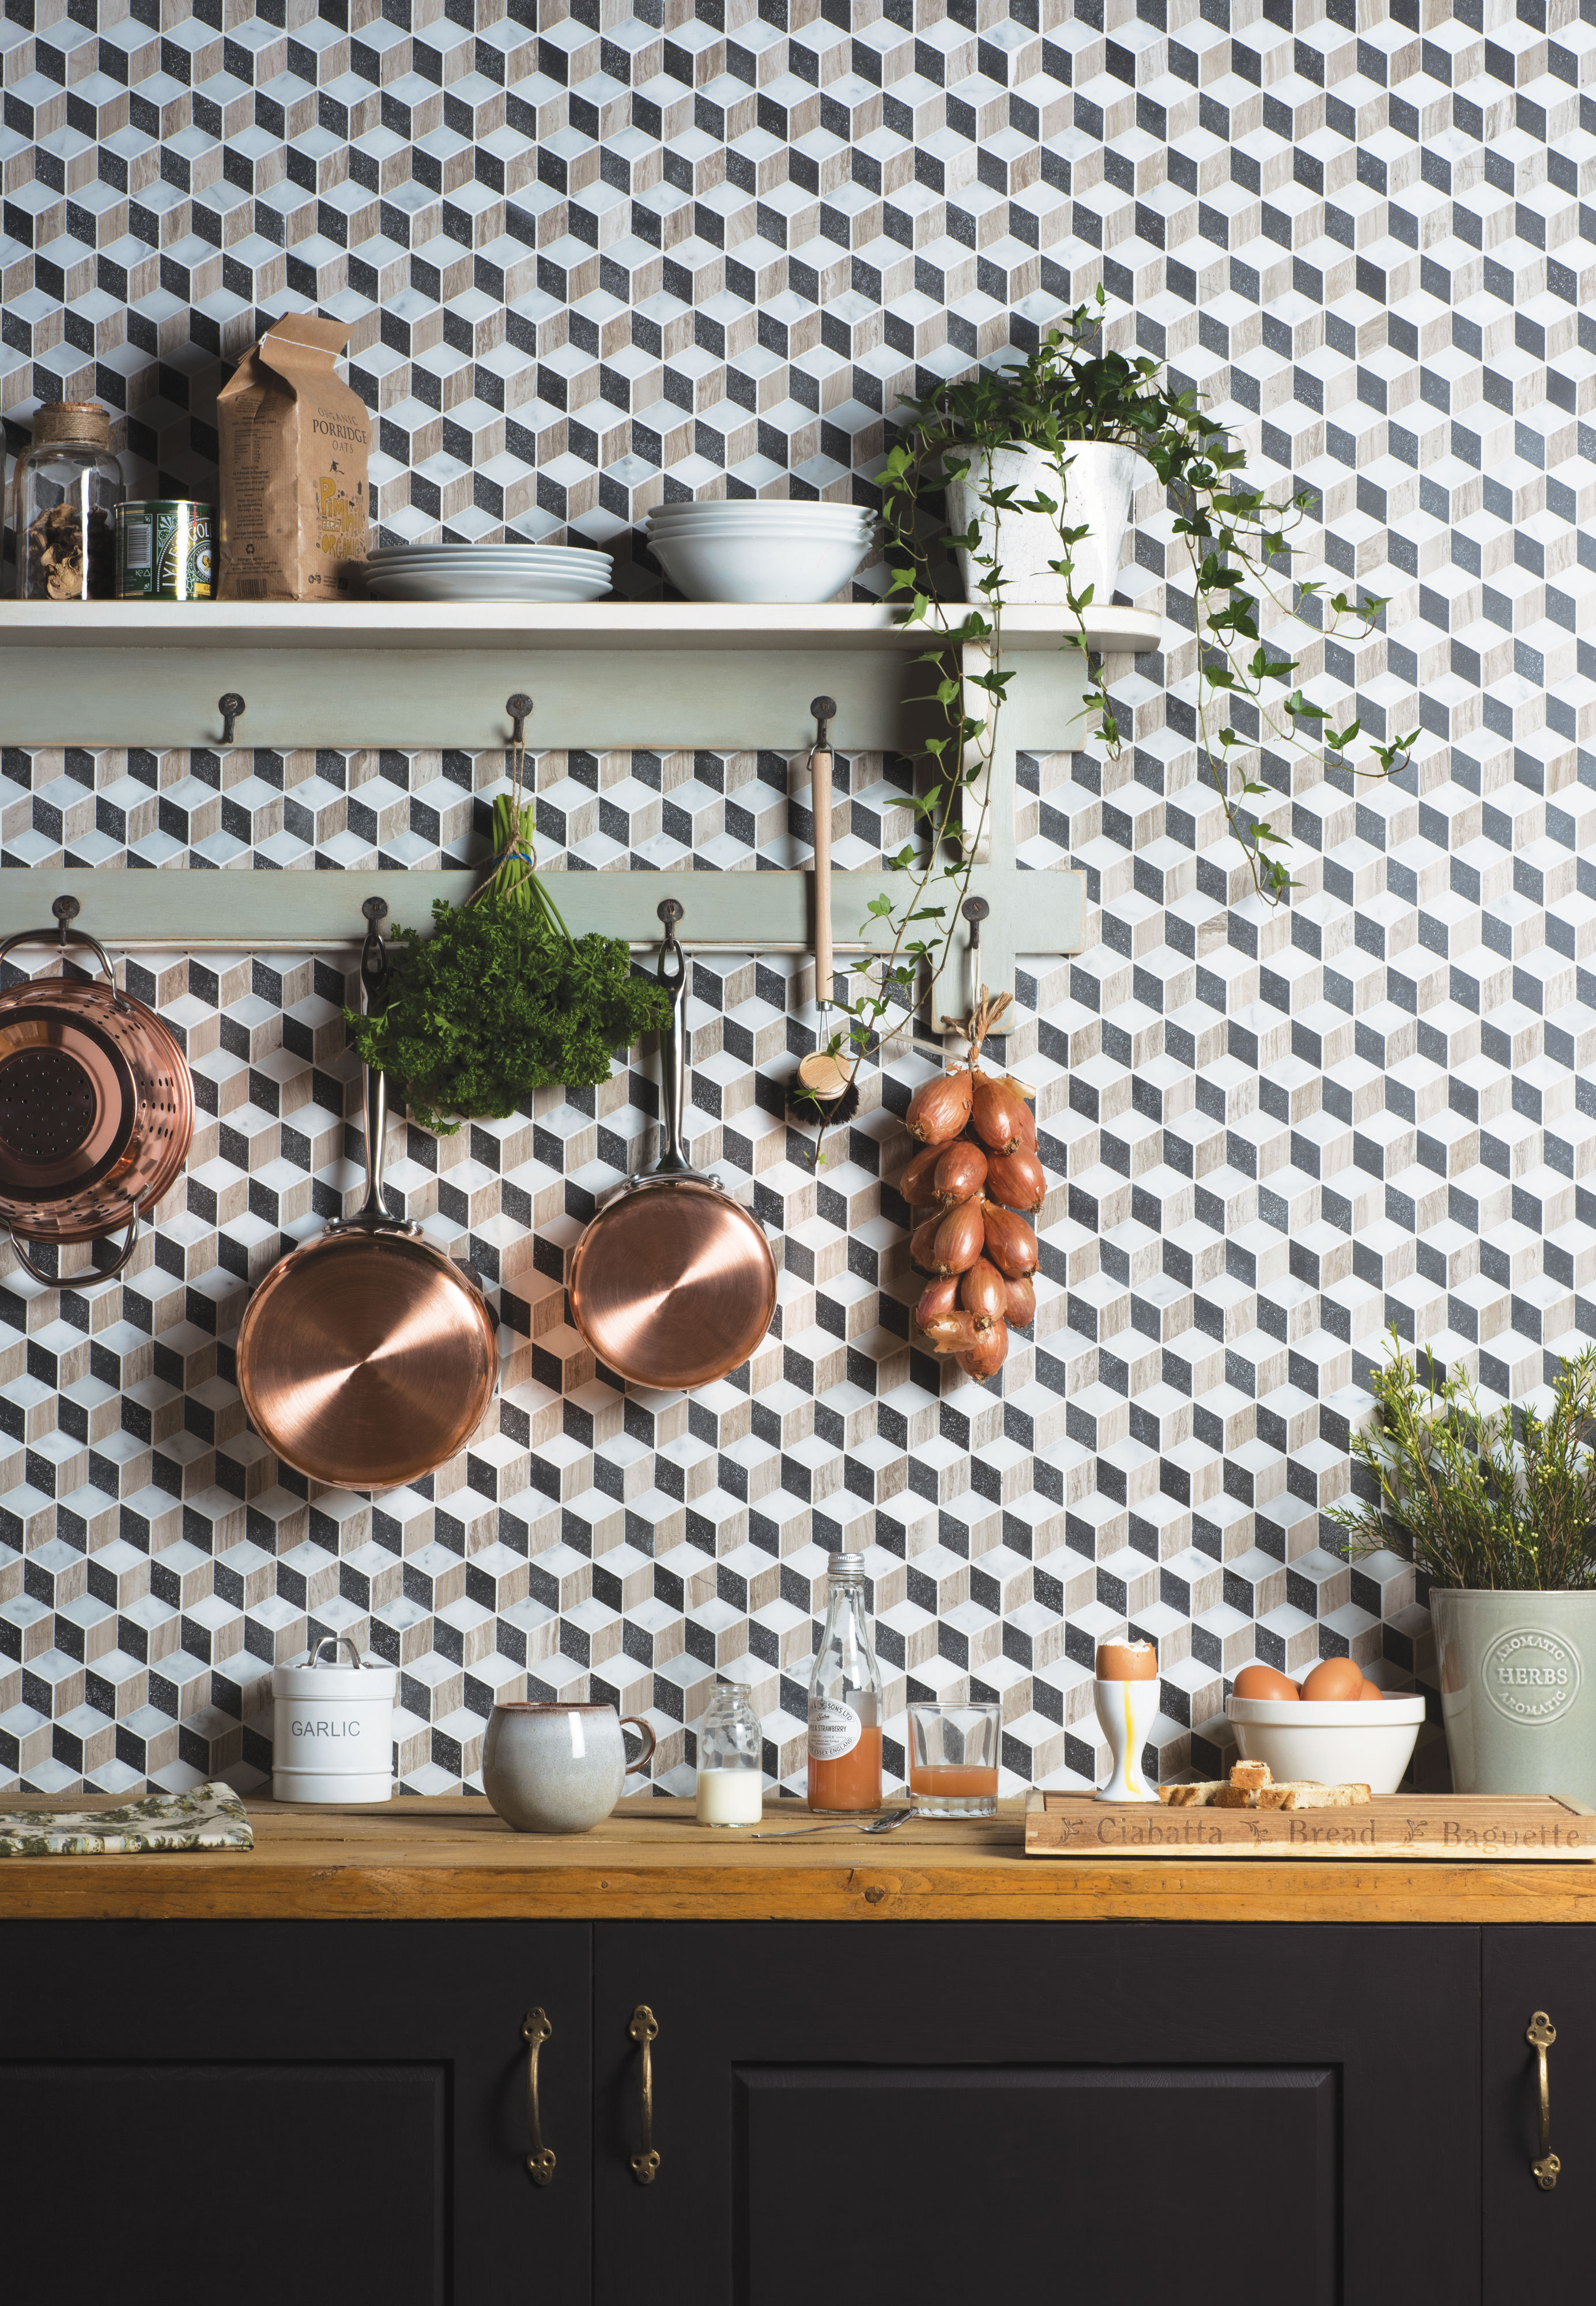 15 Small Kitchen Tile Ideas Styles Tips And Hacks To Make Your Space Look Bigger Real Homes